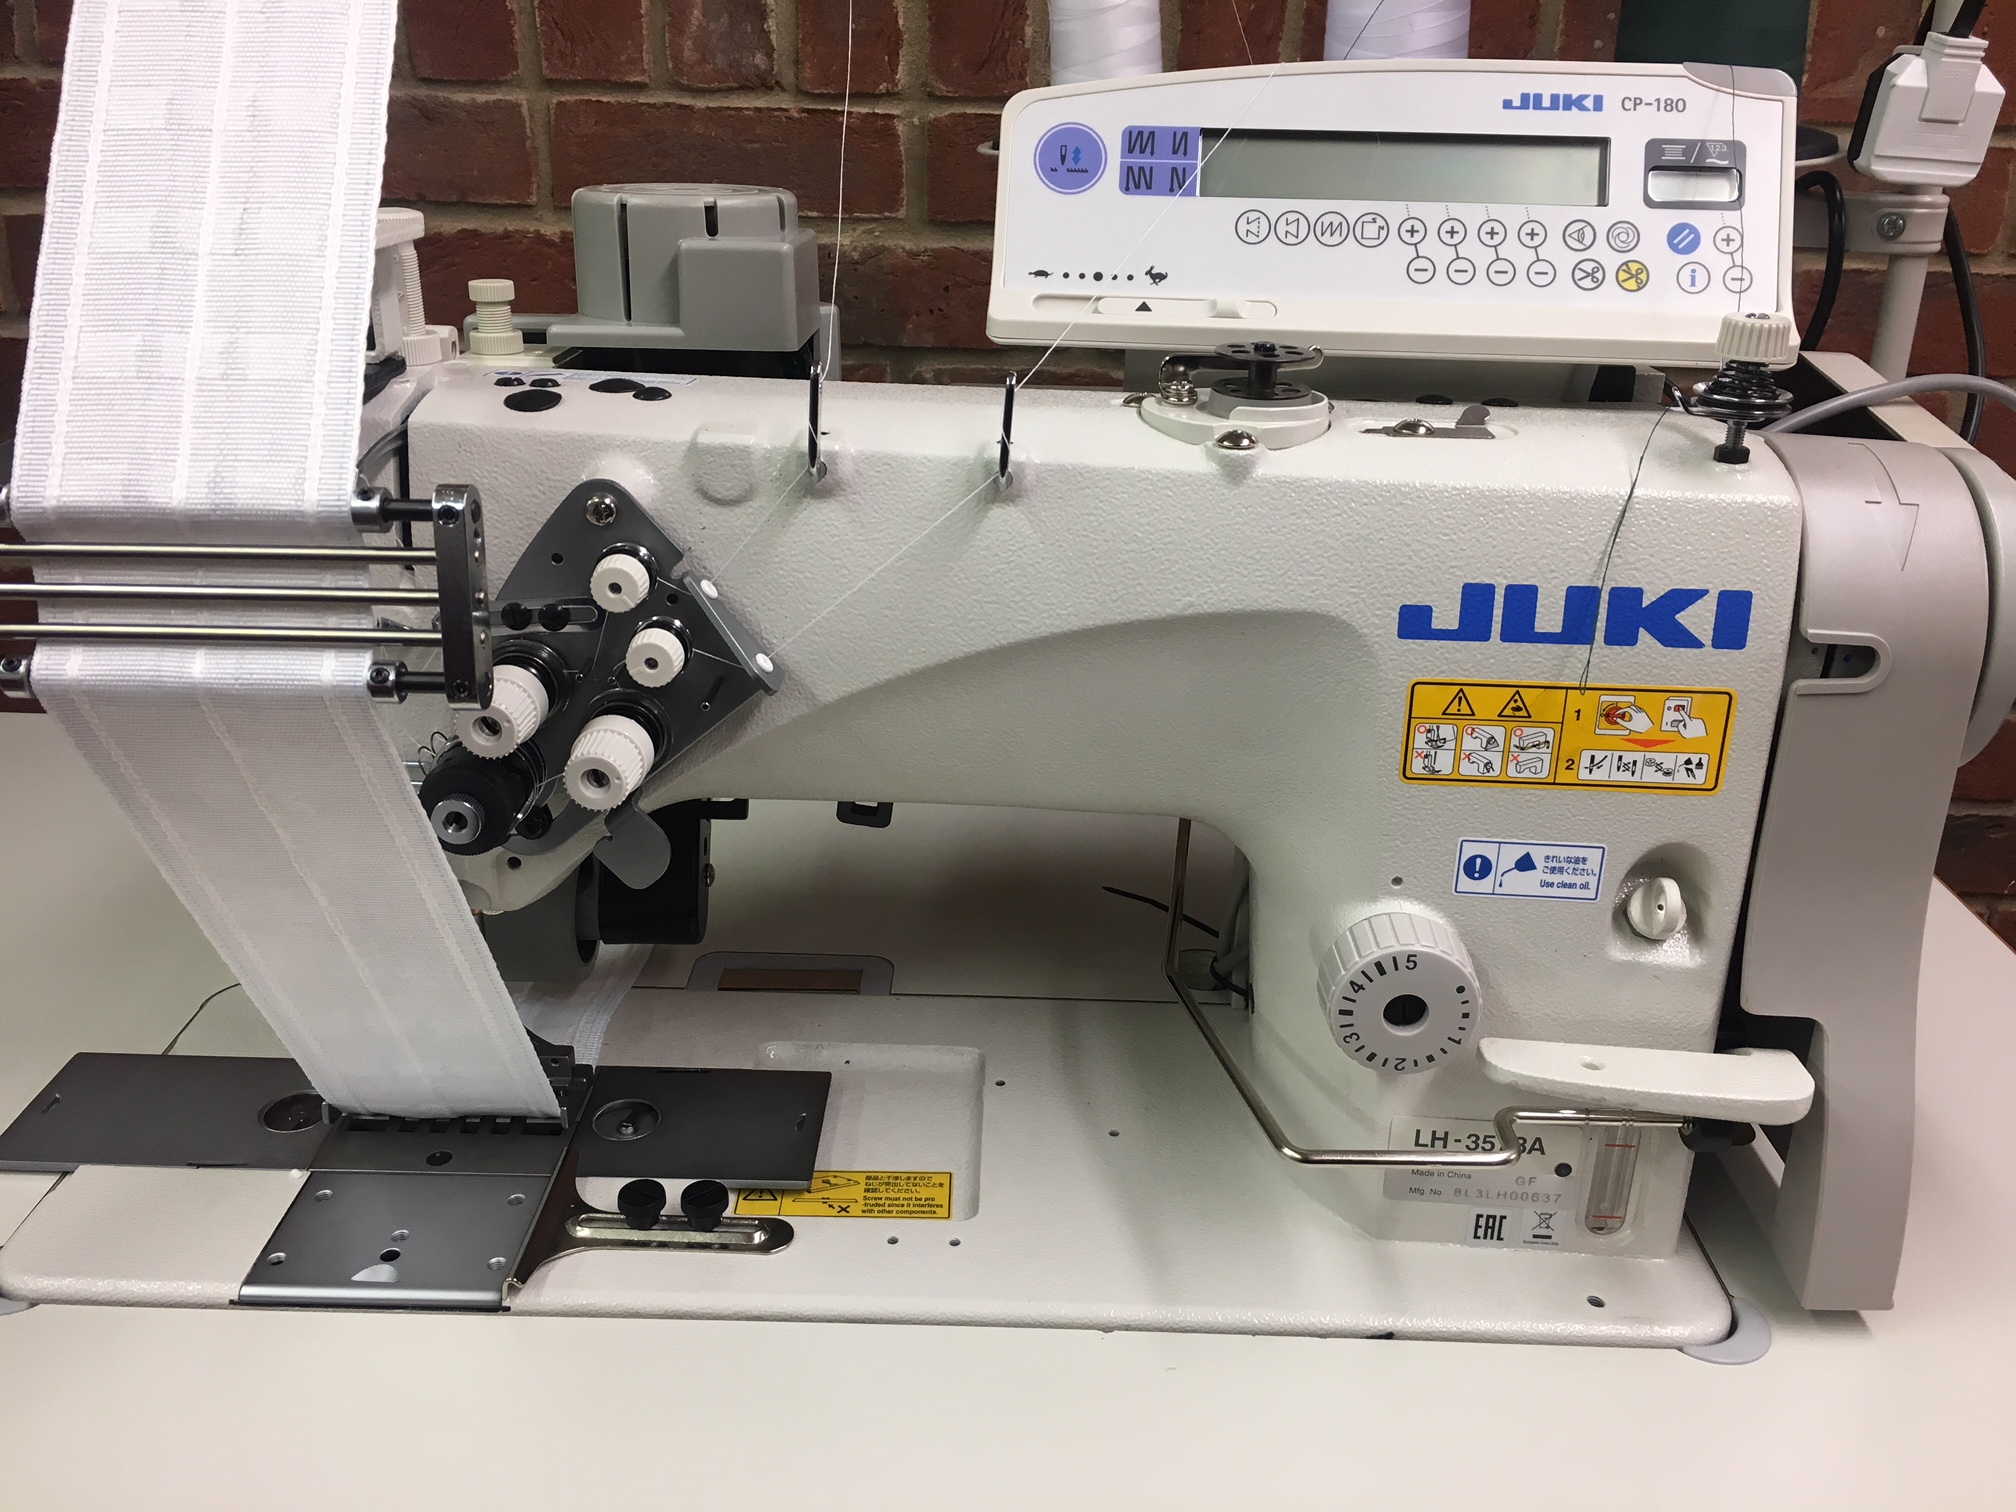 Juki LH-3578A 65mm for attaching curtain header tape